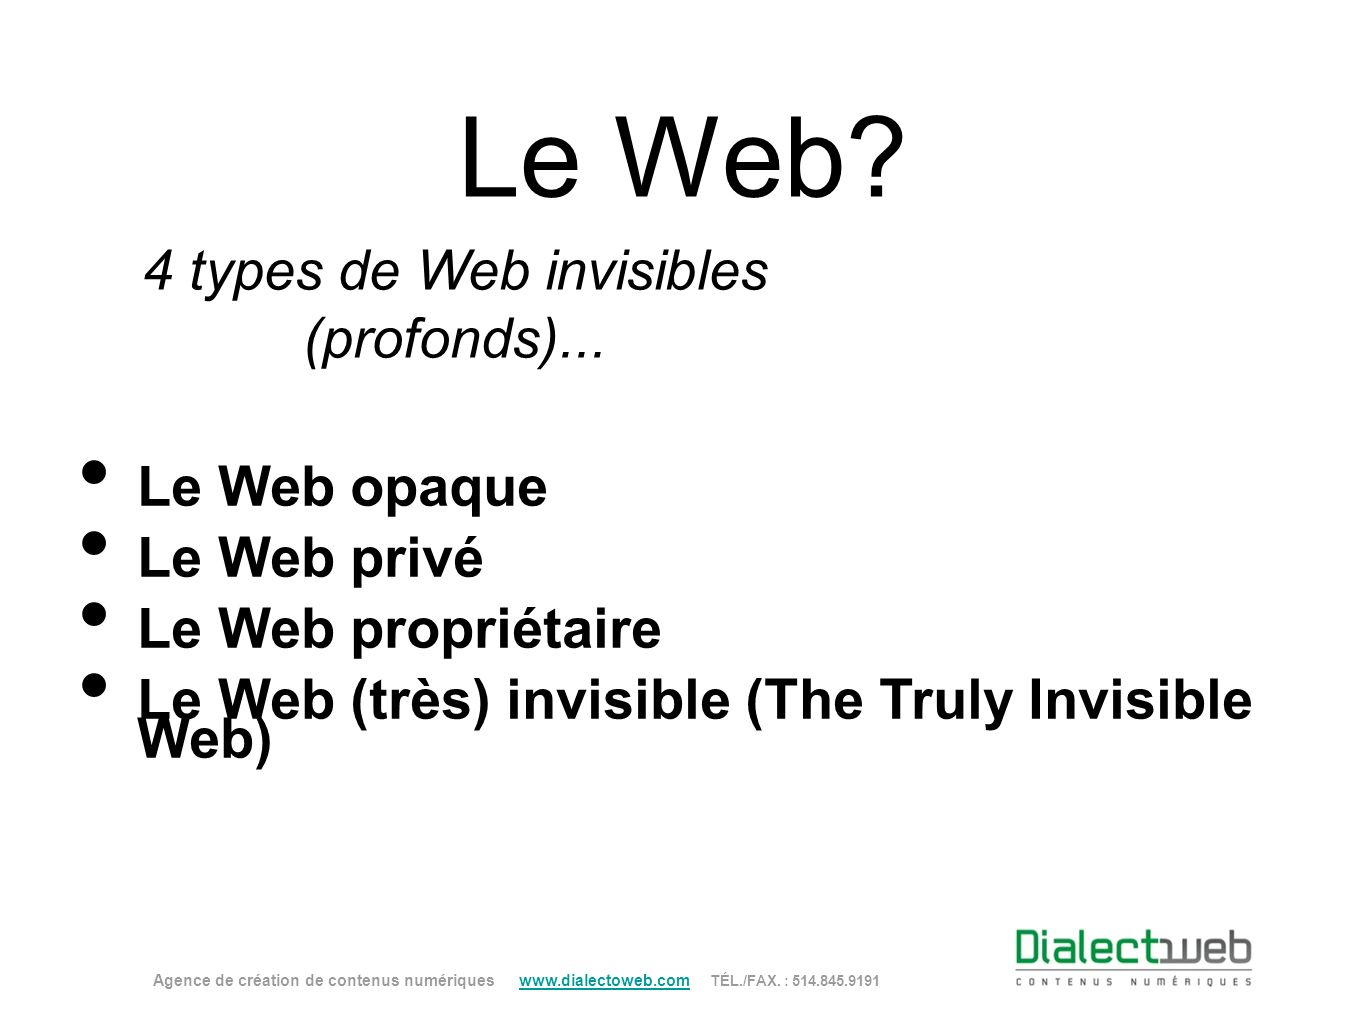 4 types de Web invisibles (profonds)...